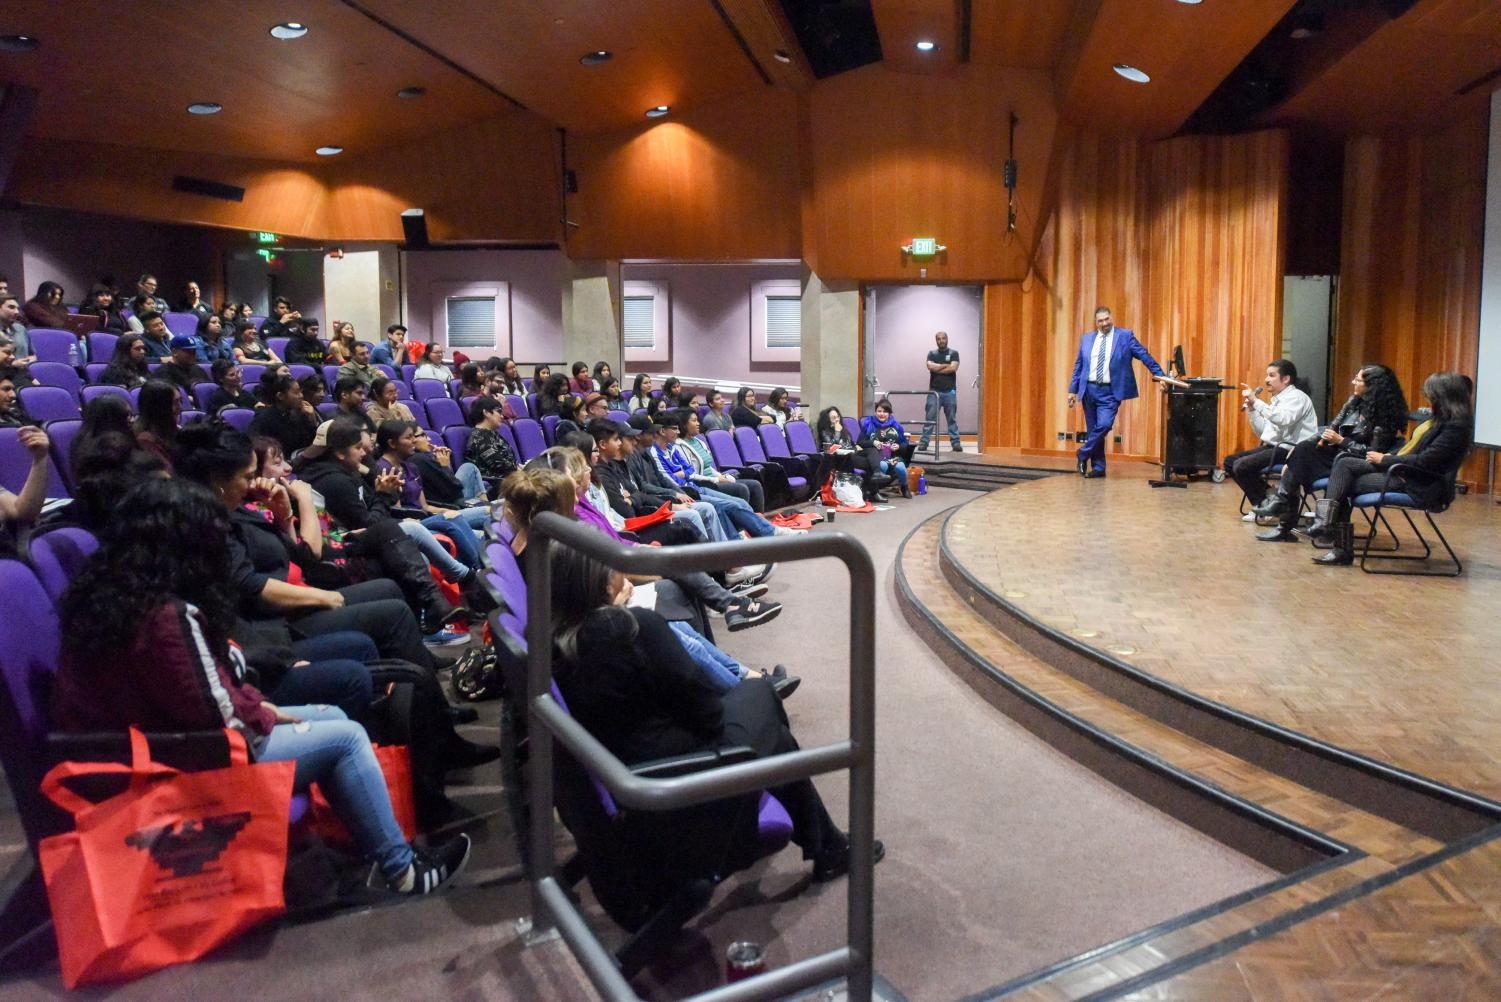 On the stage from left, Elias Serna, Lysa Flores and Sandra De La Losa answer questions from the audience during the Xicanx Culture Conference on Saturday, March 16, 2019, in the Business and Communication Forum at City College in Santa Barbara, Calif.